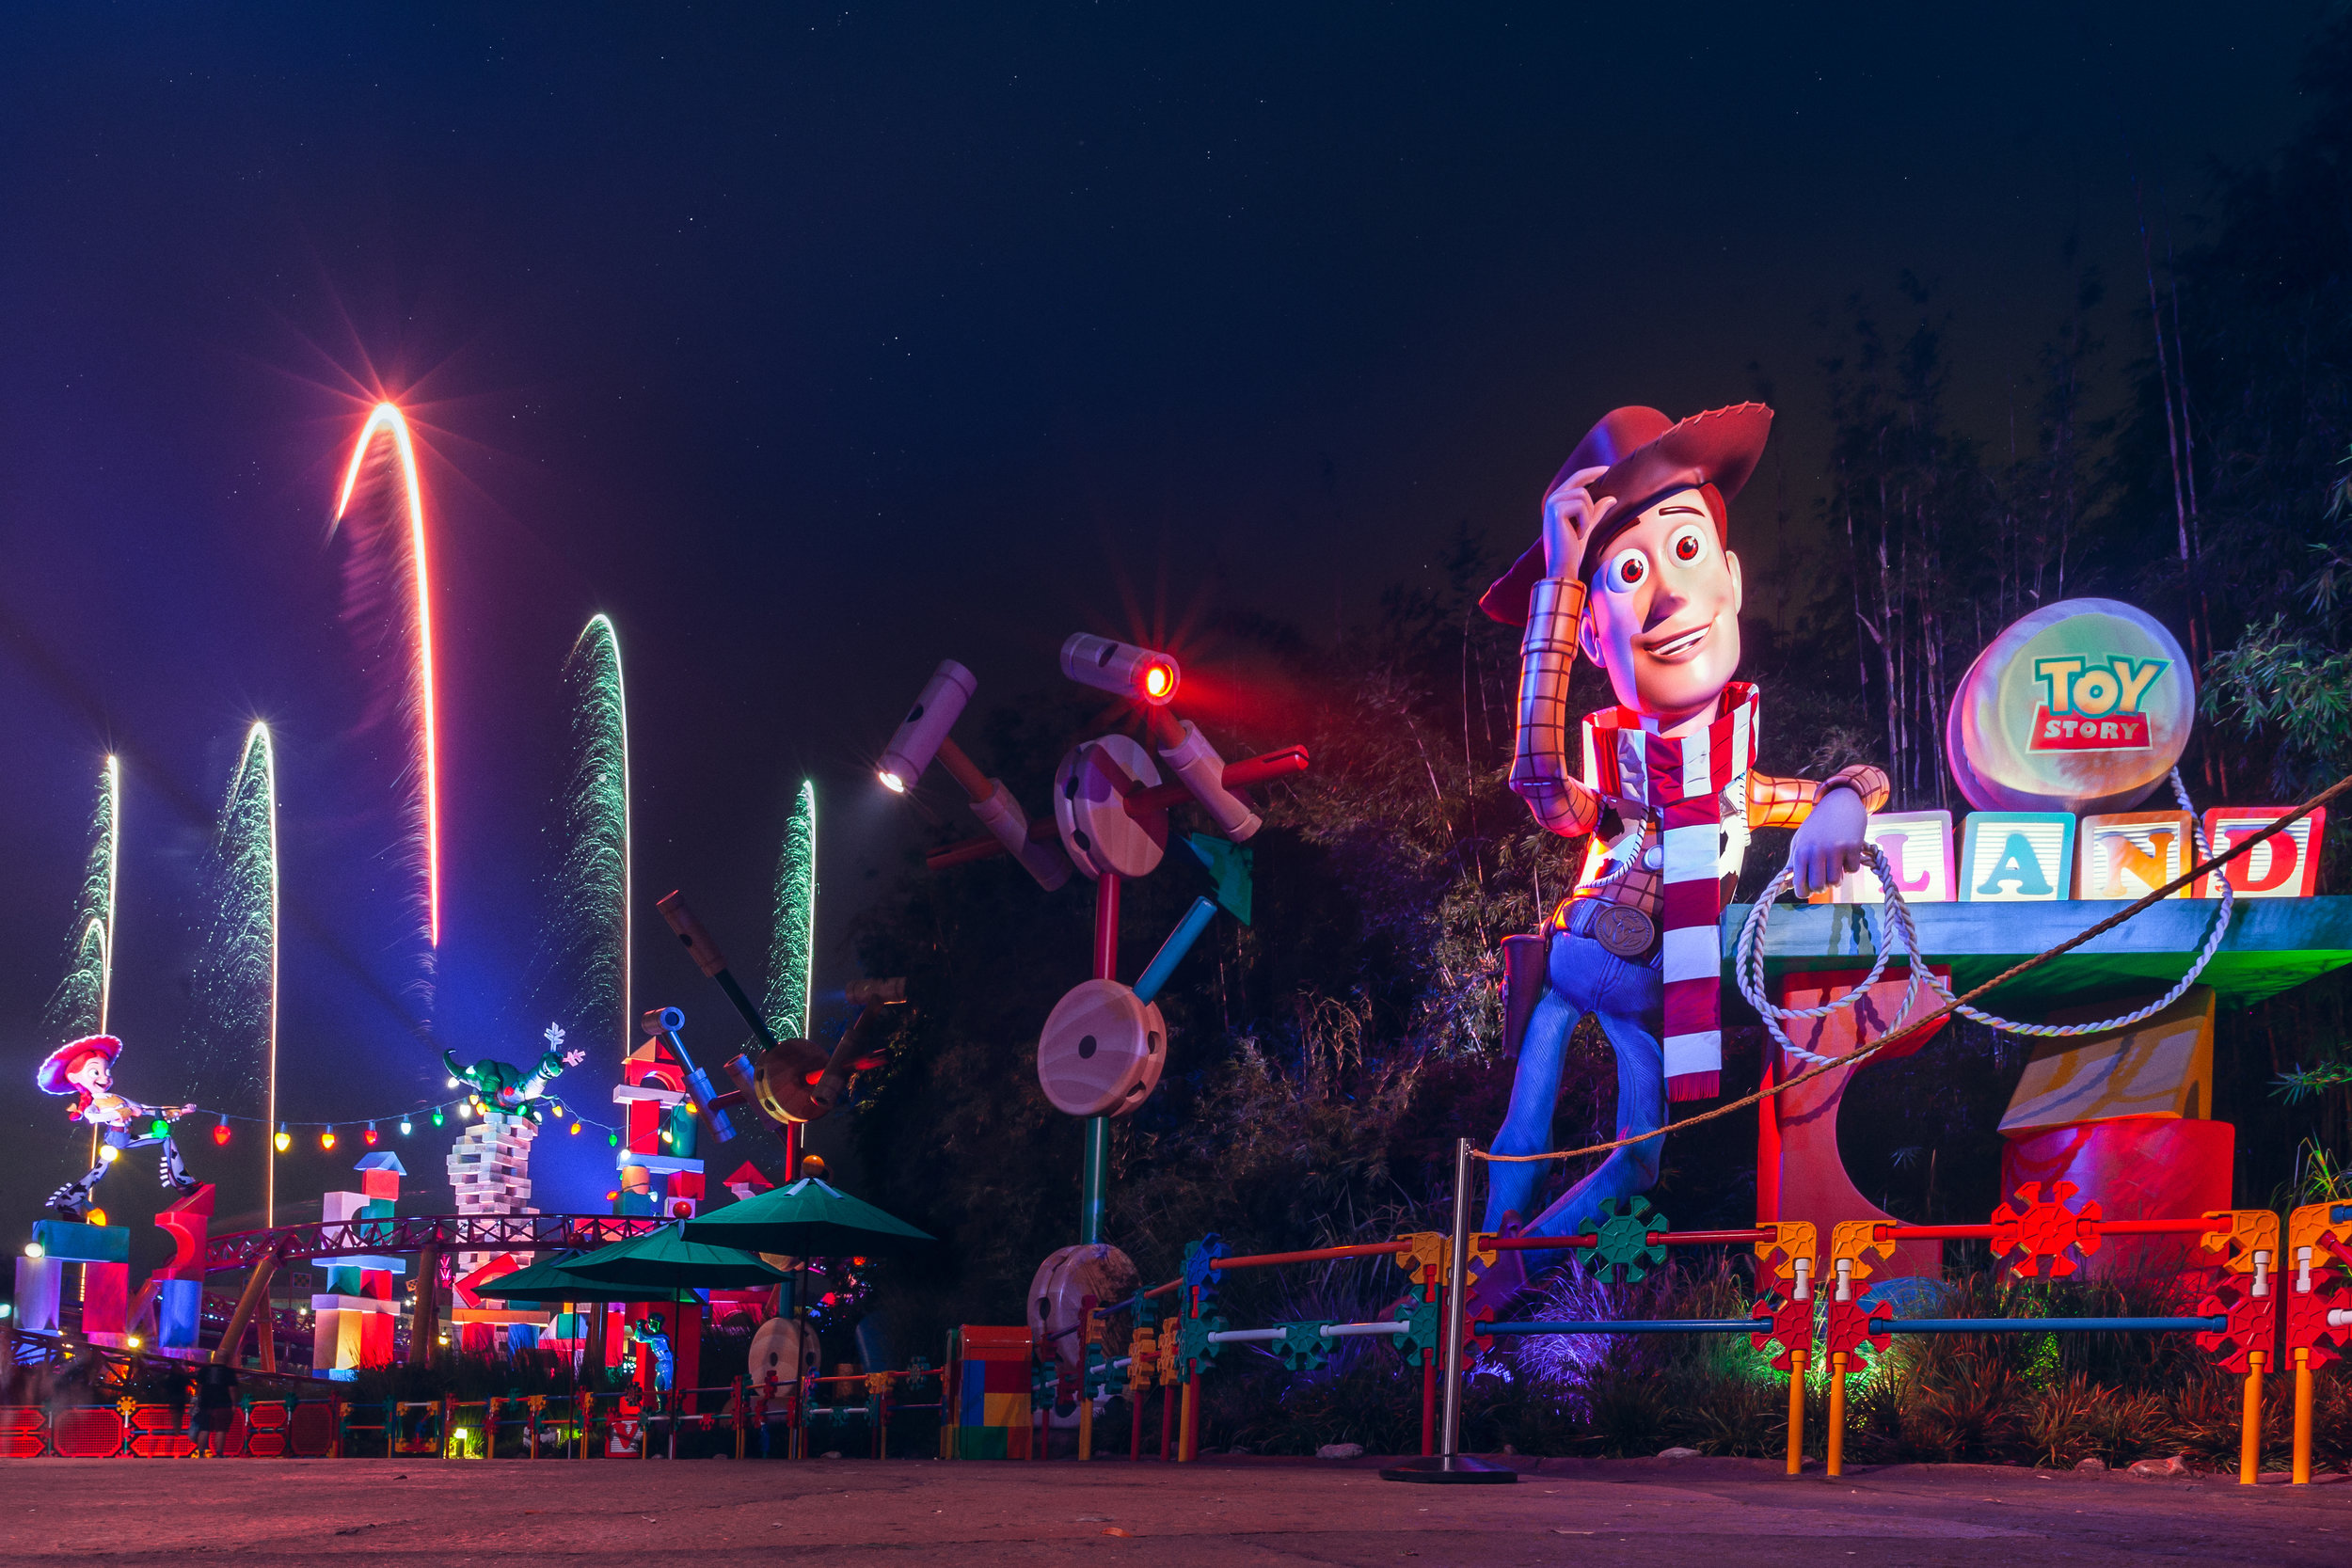 Fireworks at Toy Story Land. Shot with: Canon 5D Mark II, 16-35mm 2.8 II lens at 20mm. Exposure 11 sec at F/14, ISO160.